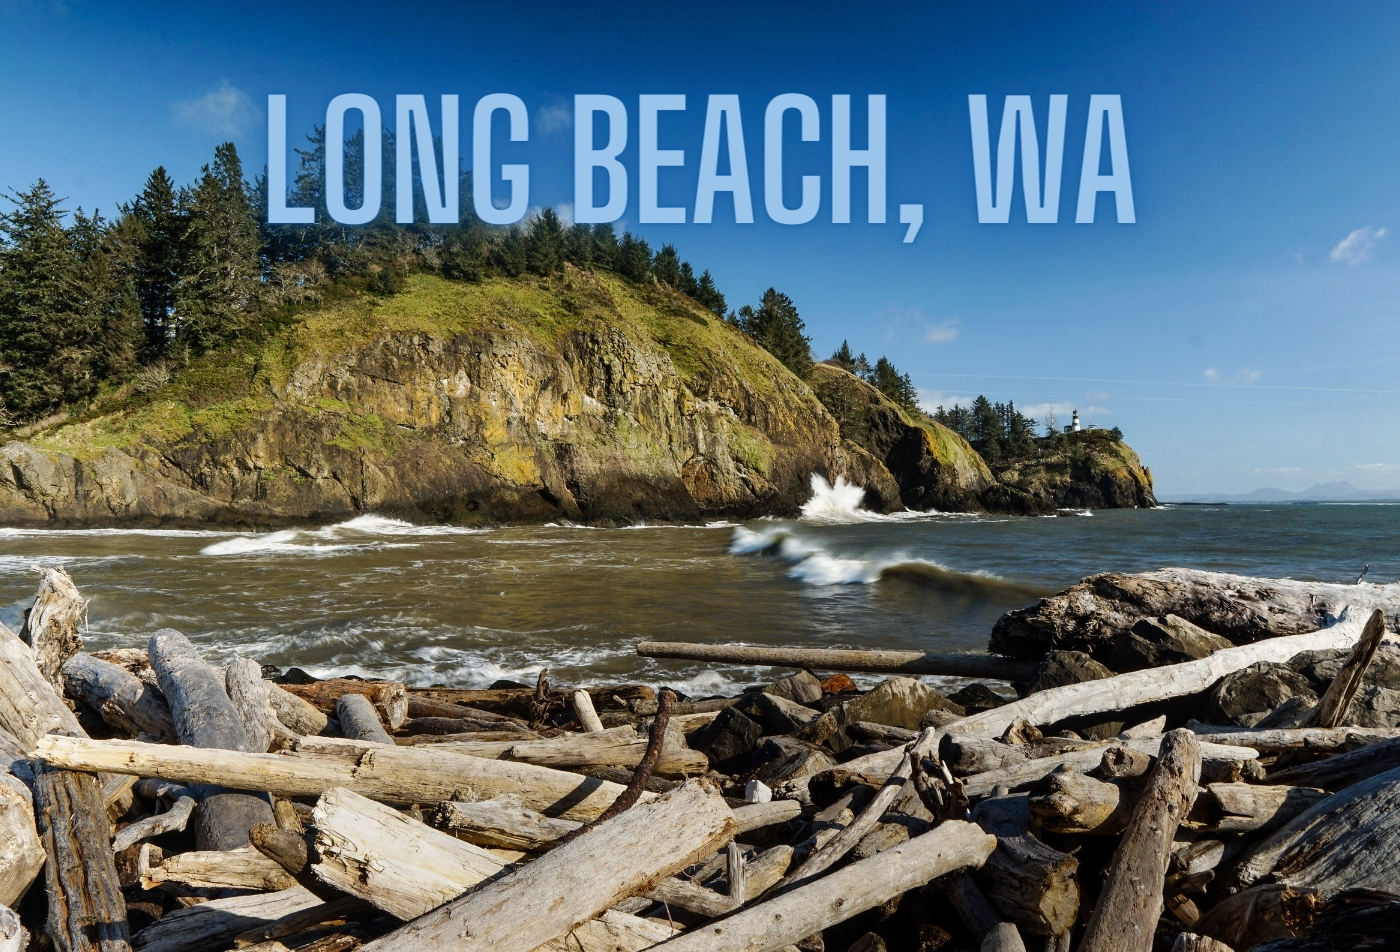 Long Beach, Washington - March 2020